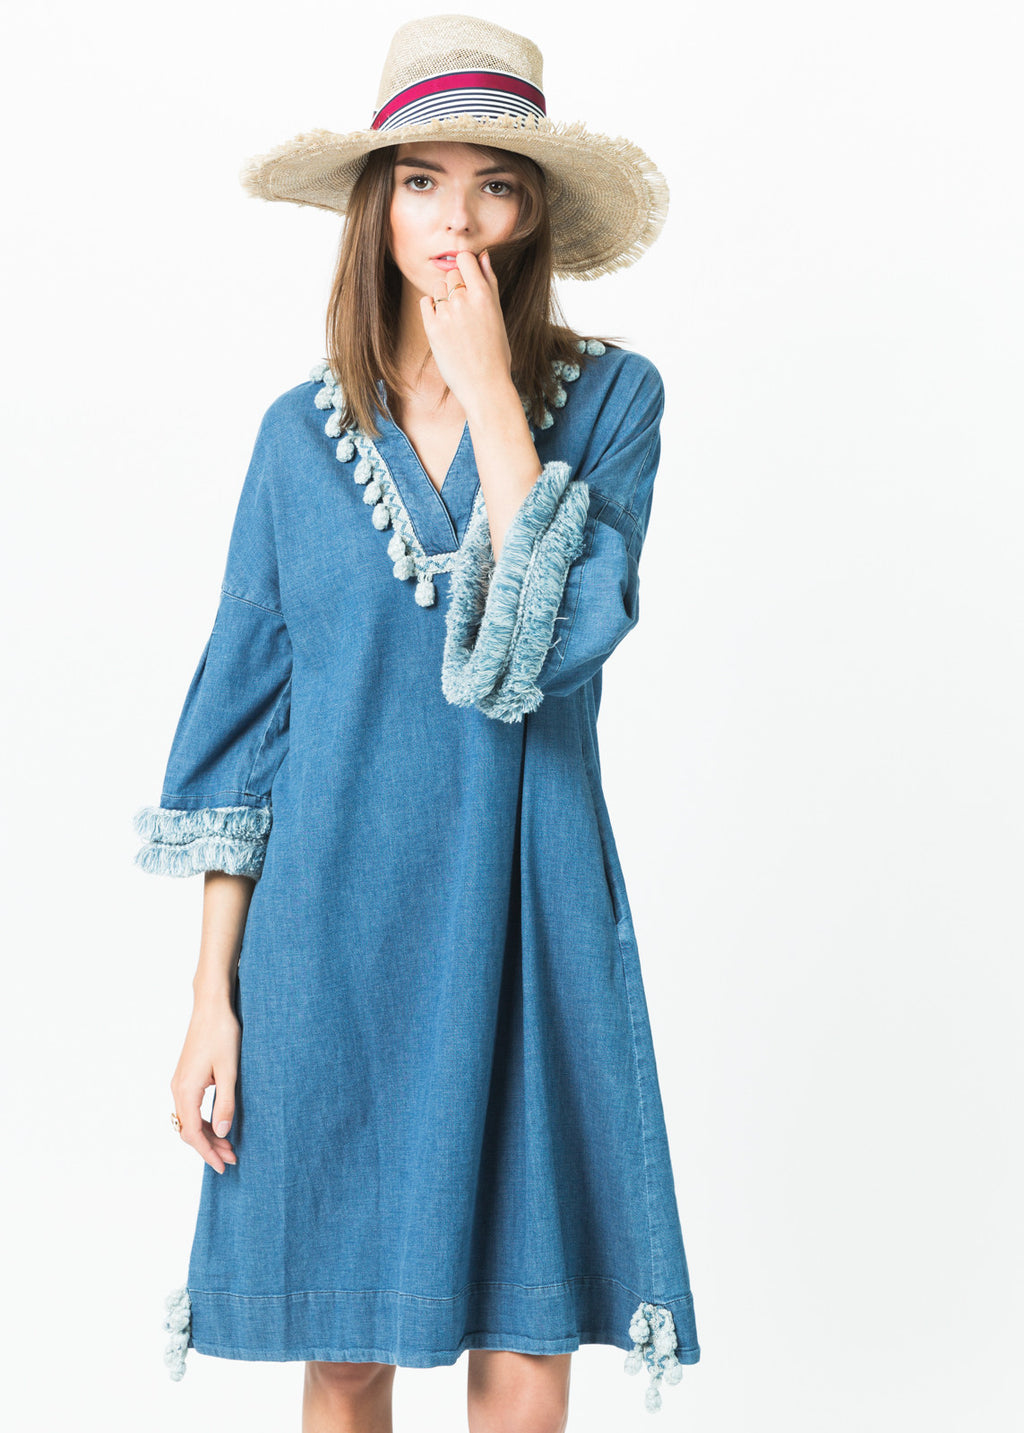 Tassel Trim Chambray Dress